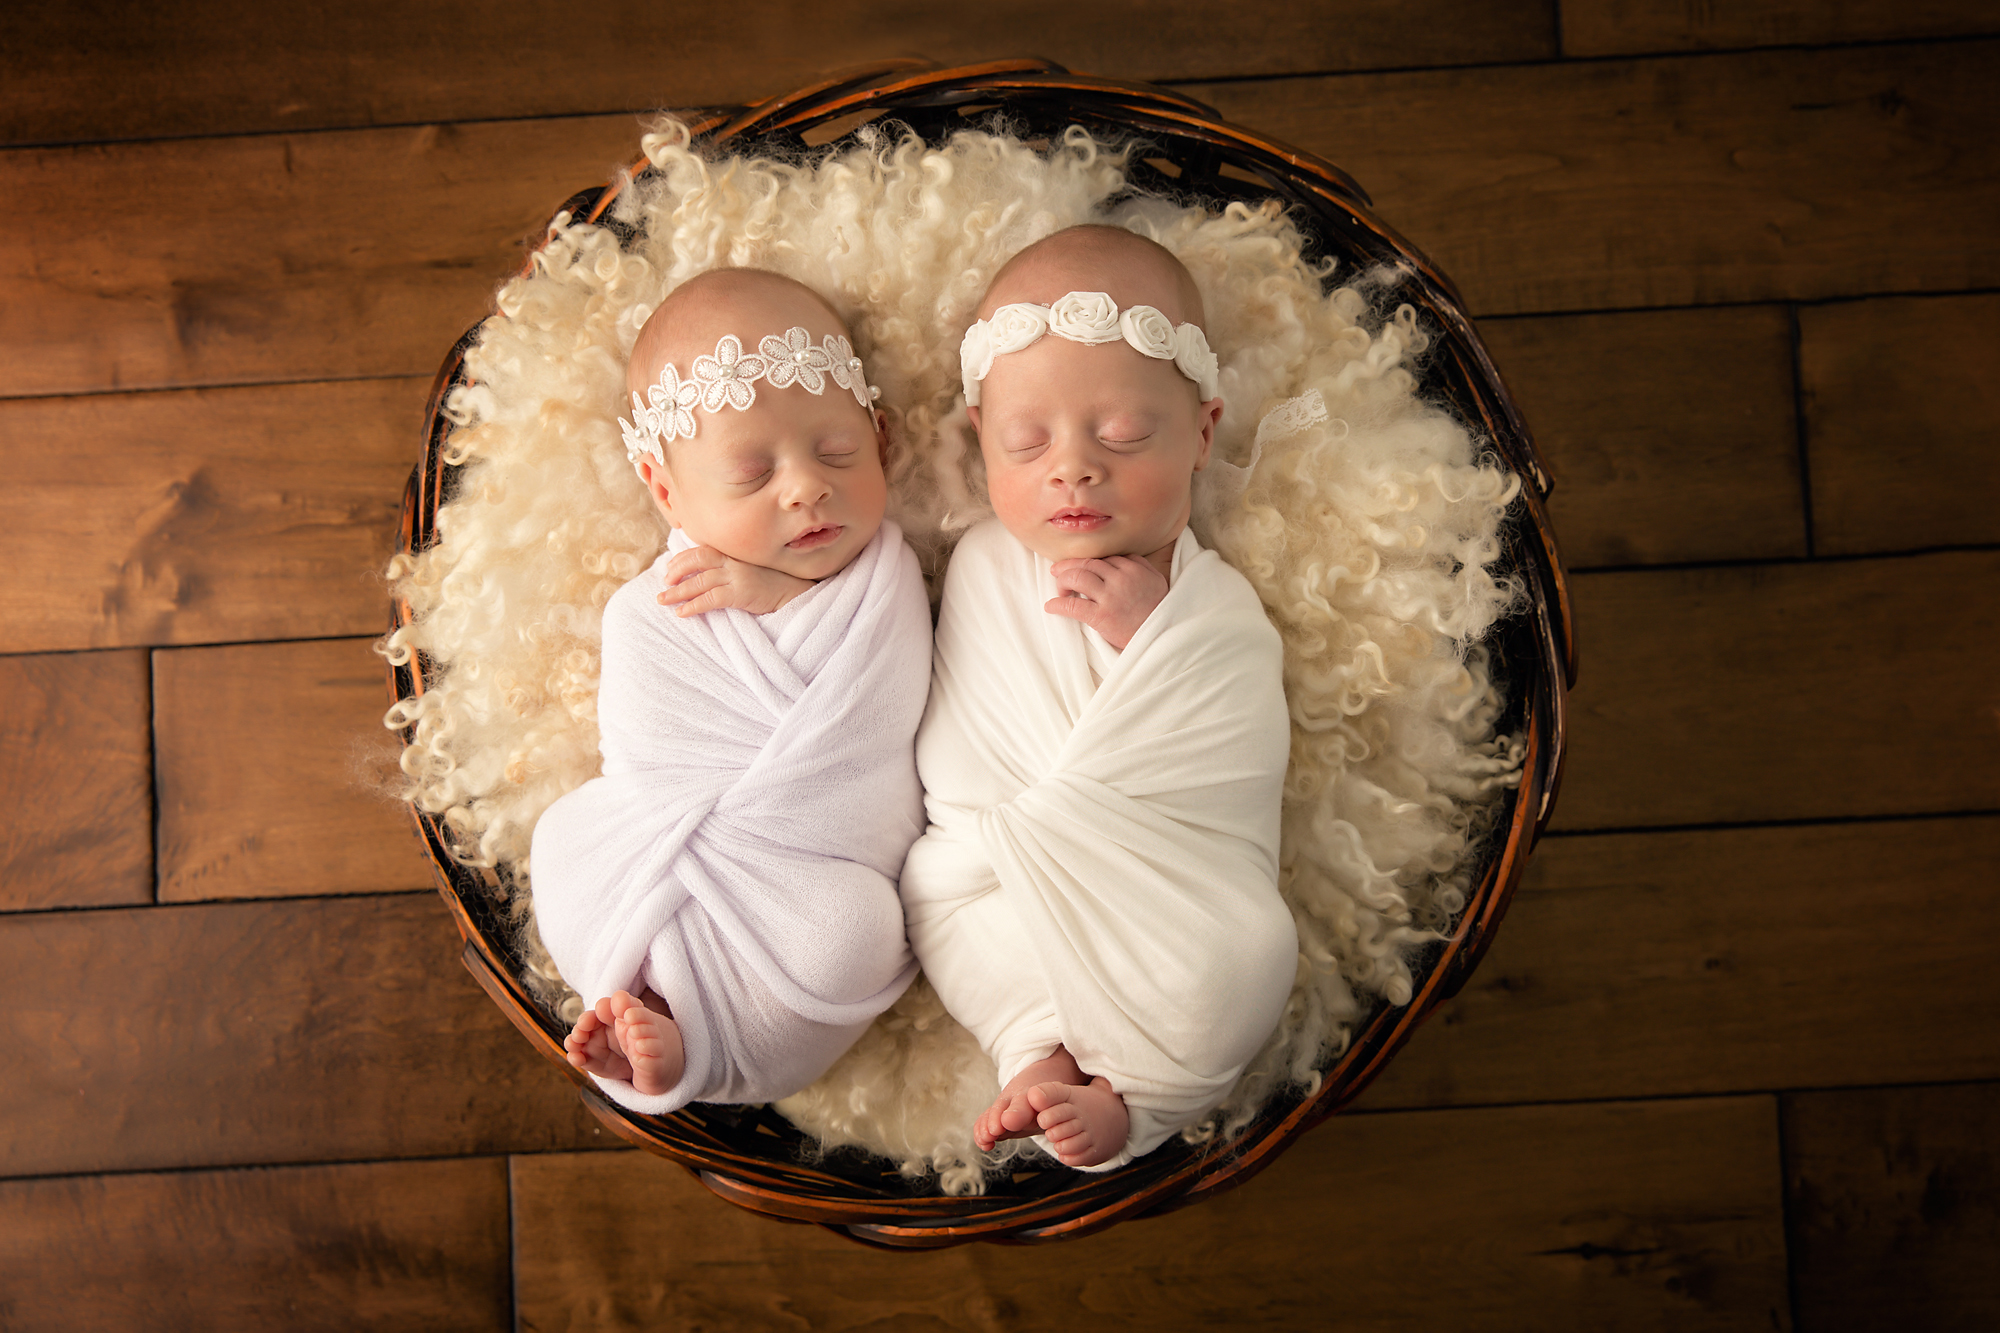 Twins Photography in Calgary, Alberta by Milashka Photography. Newborn Twin sisters are posed in a round basket and wrapped in white.